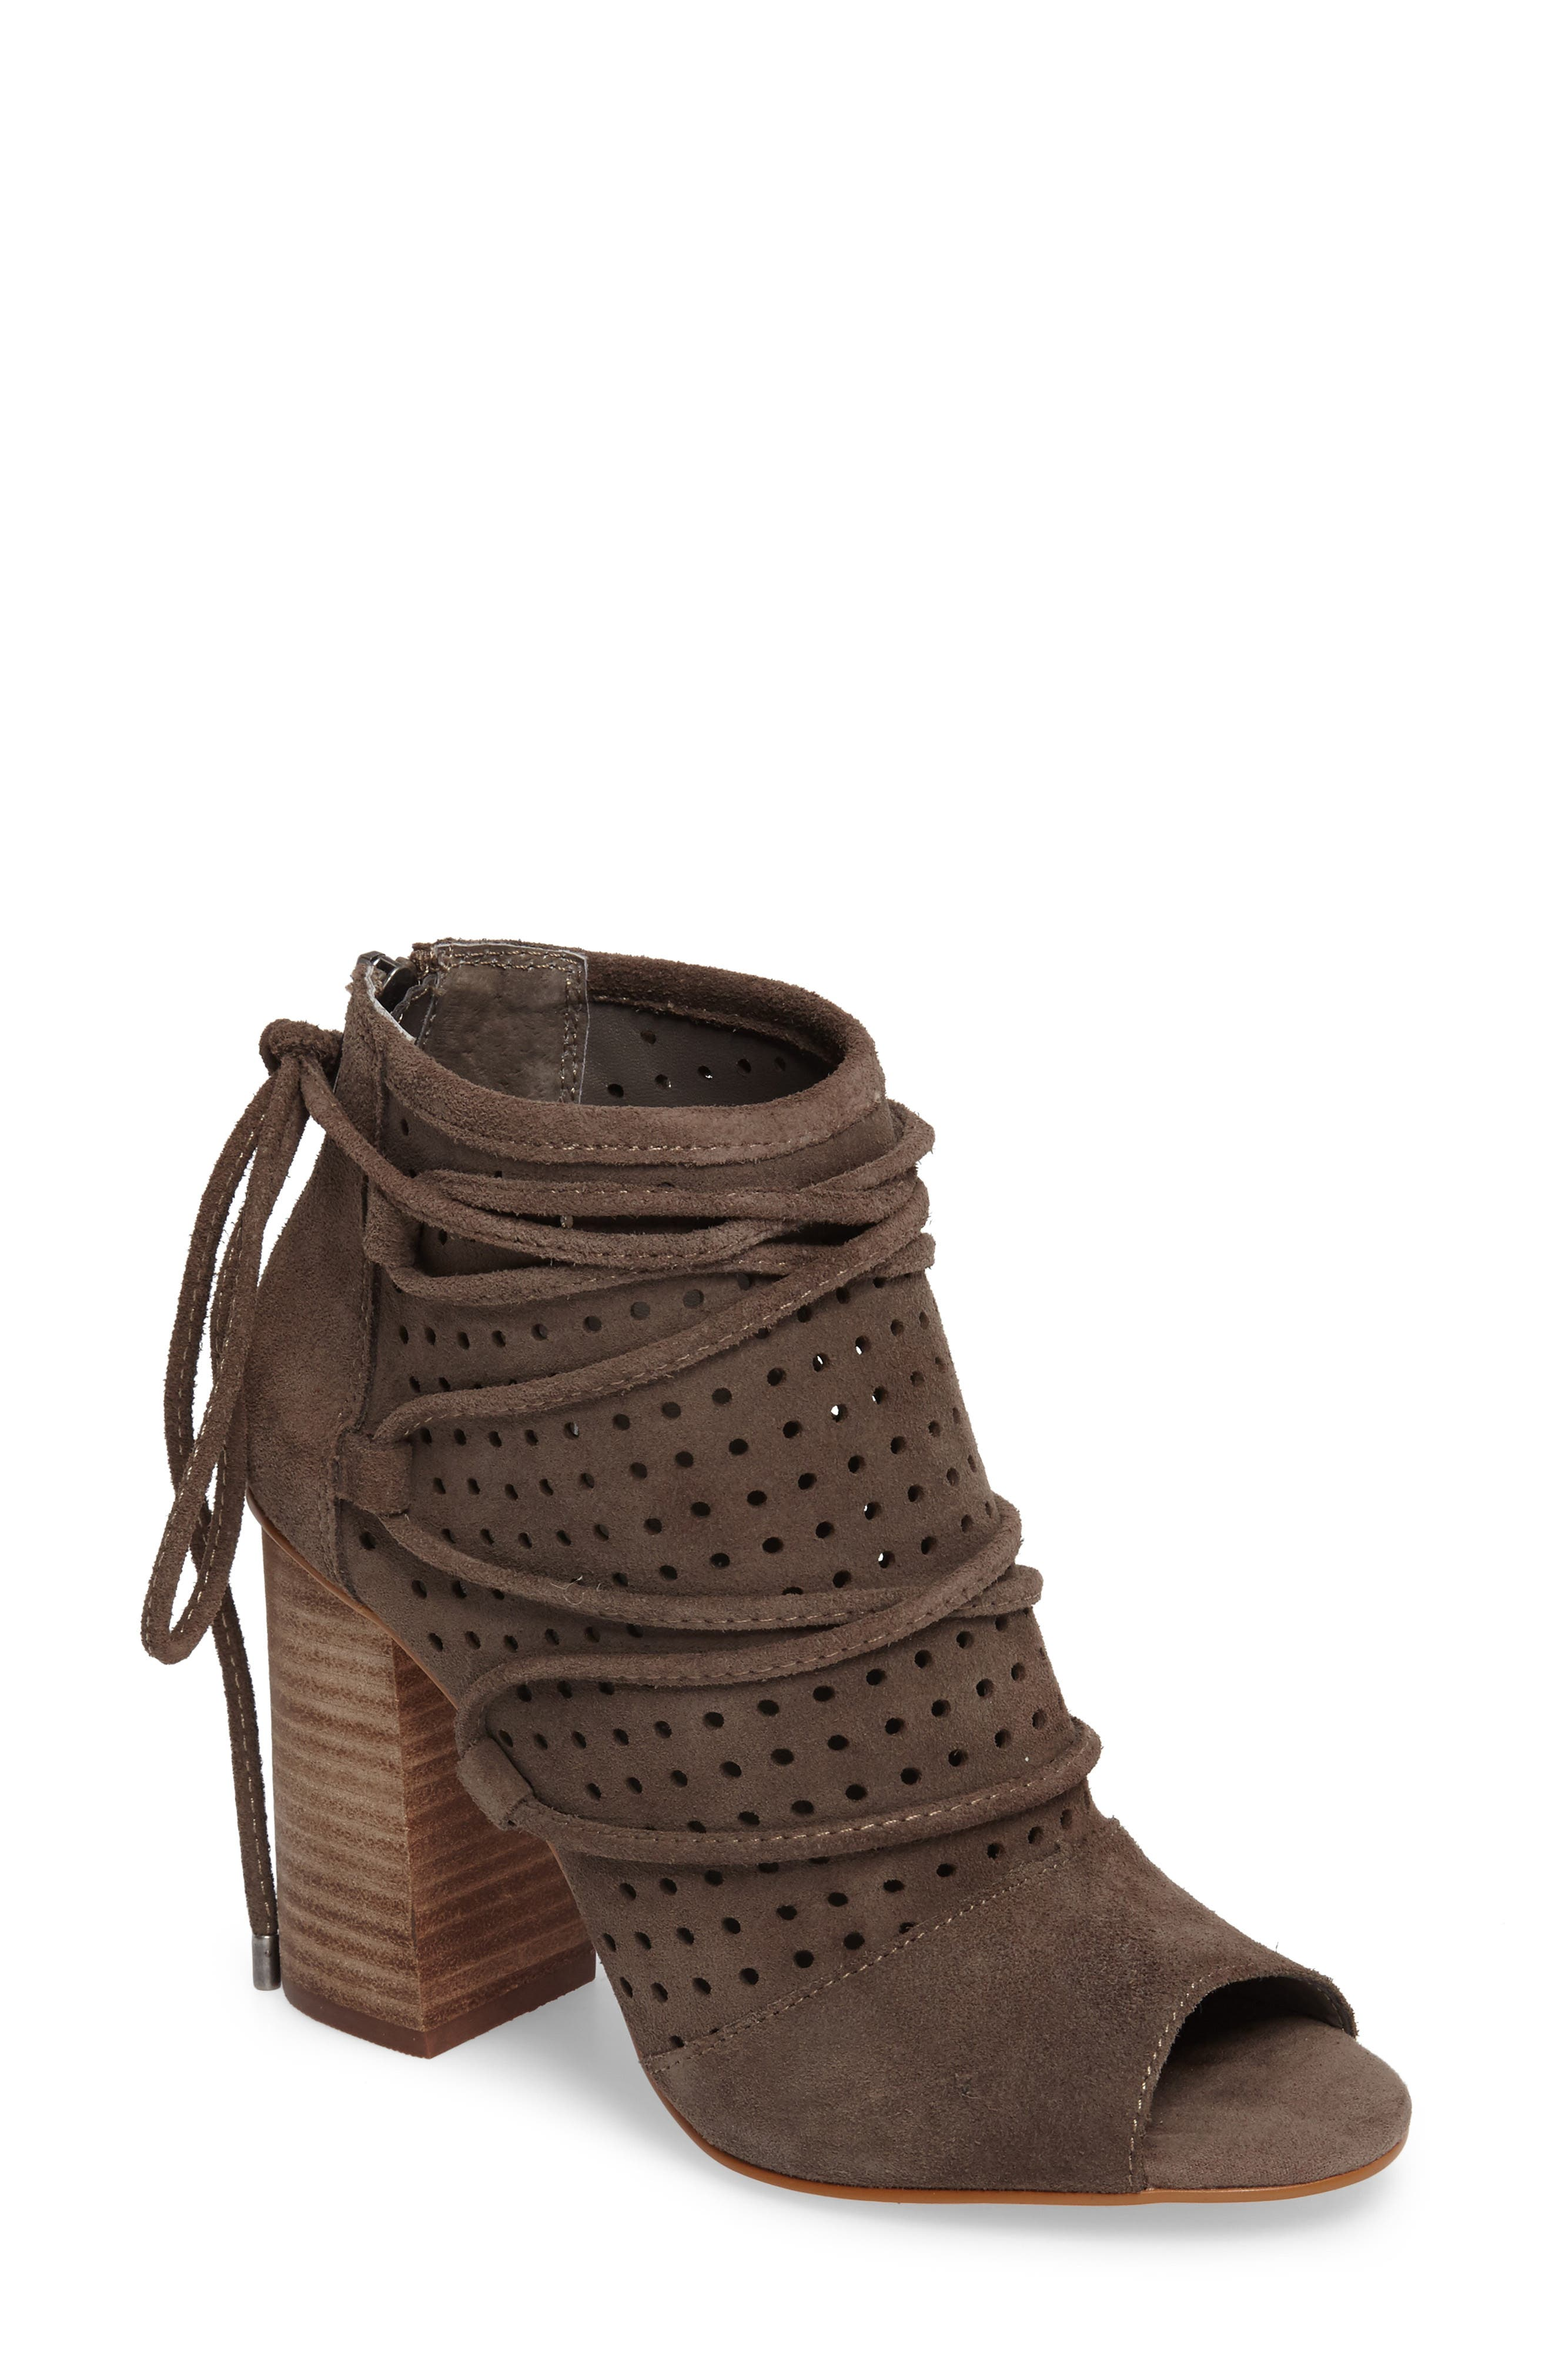 Main Image - Very Volatile Kalio Perforated Open Toe Bootie (Women)